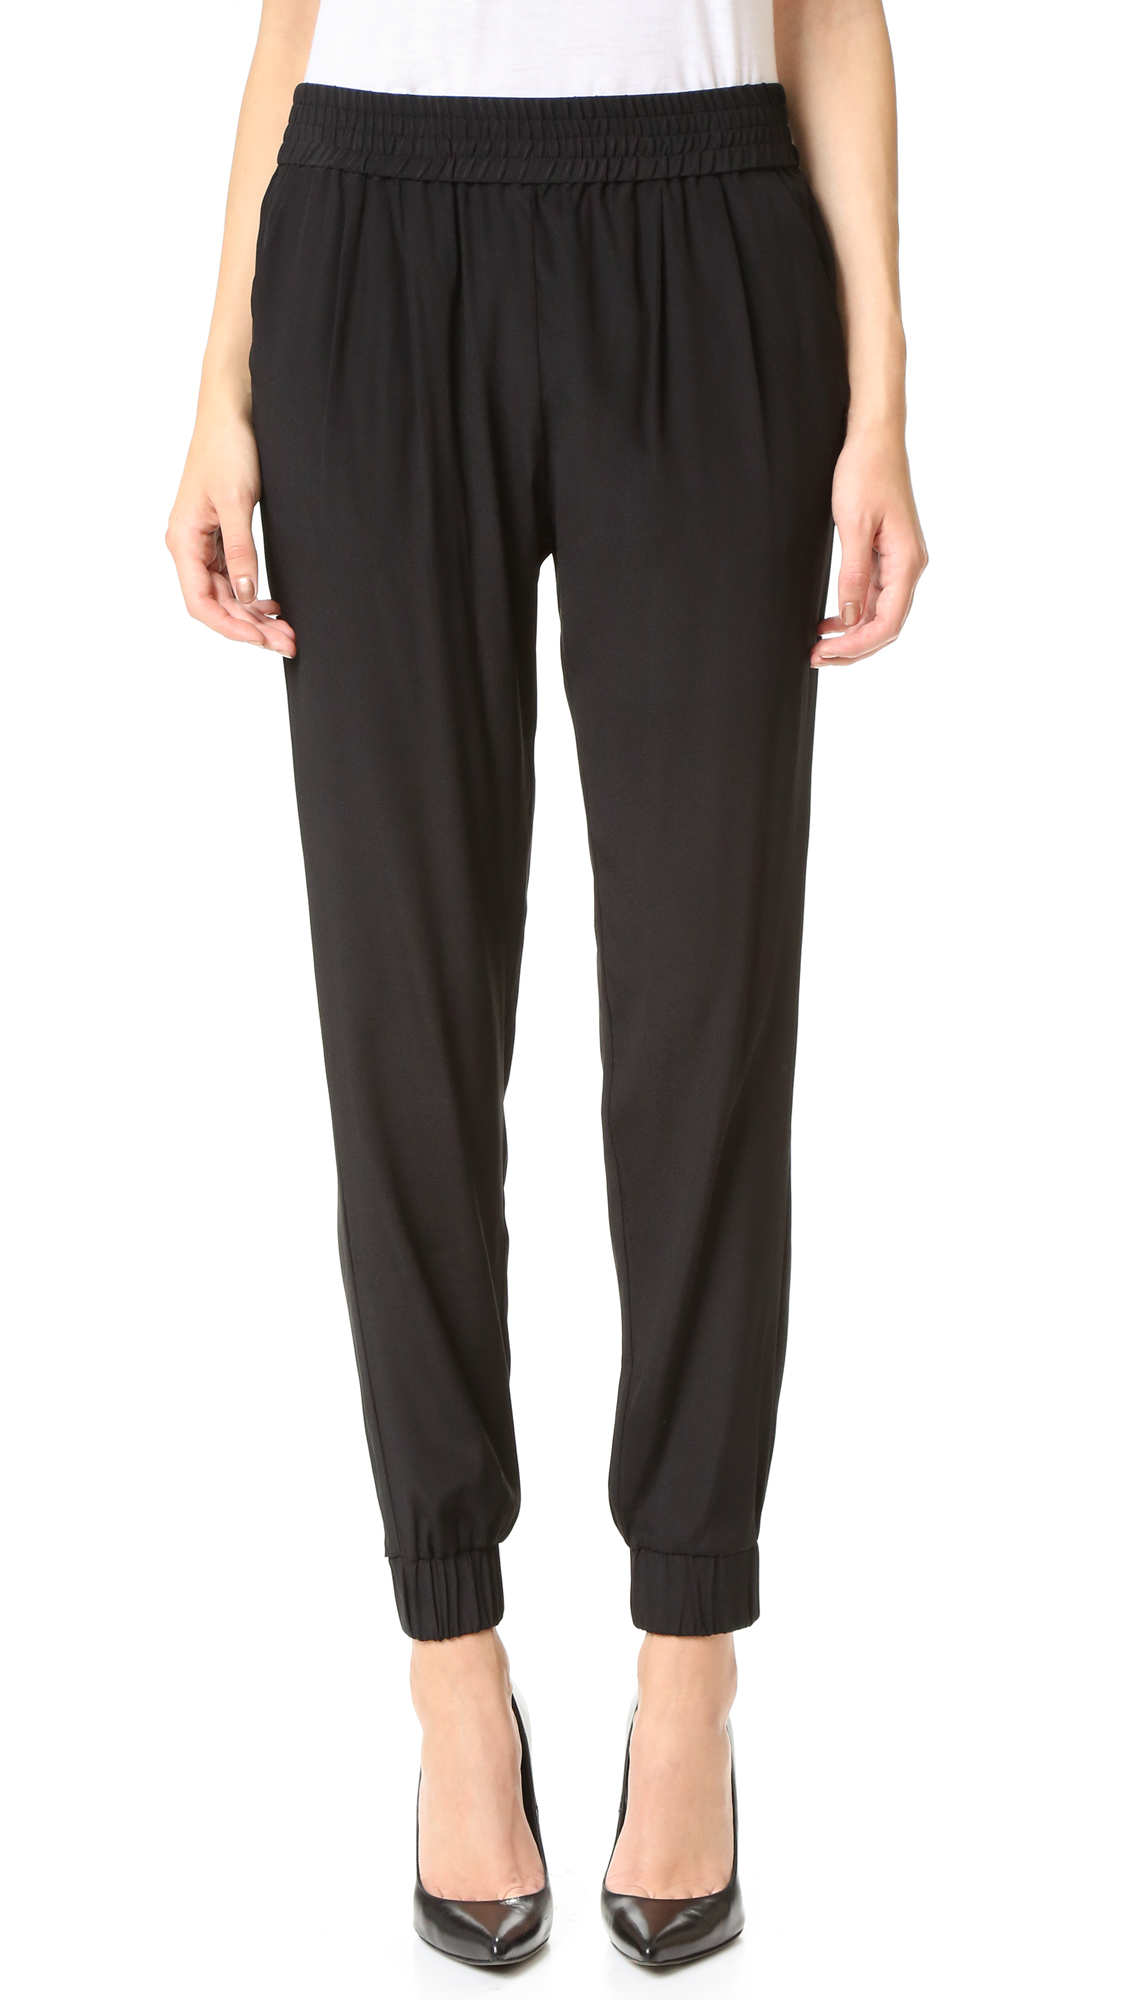 Emerson Thorpe Emilia Pants - Black